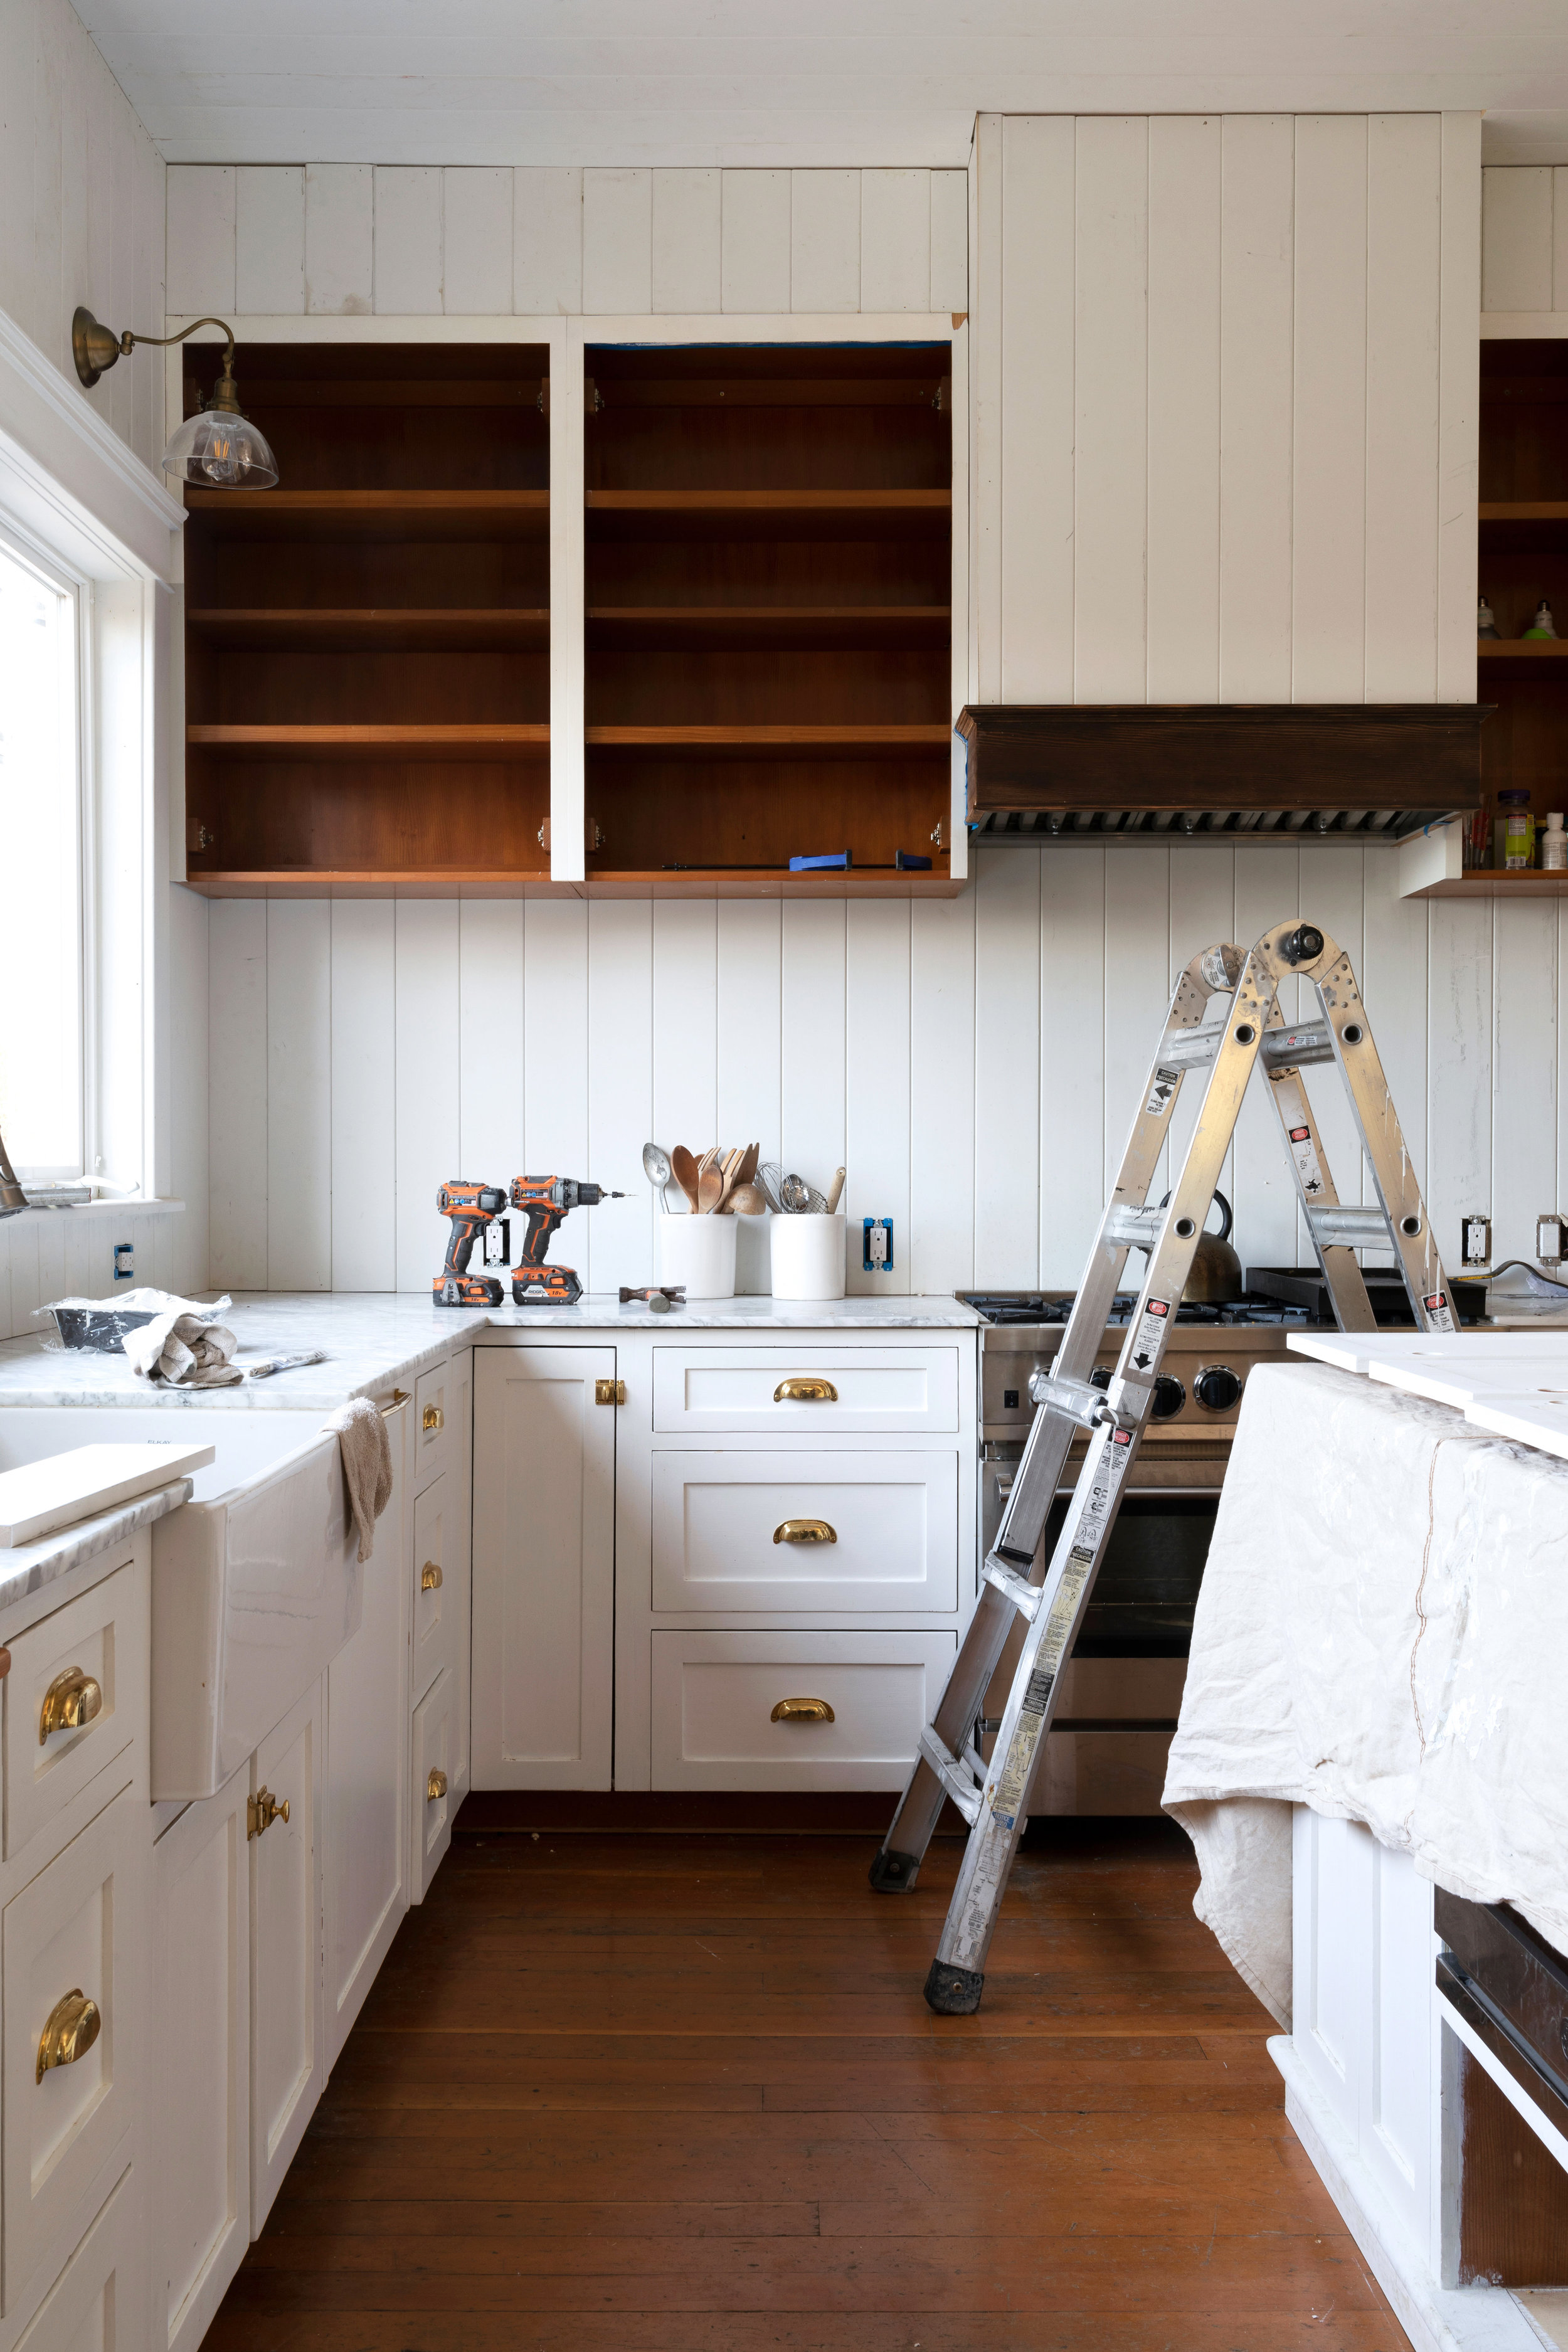 Image of: Farmhouse Kitchen Let S Talk About The Built In Hood Vent The Grit And Polish